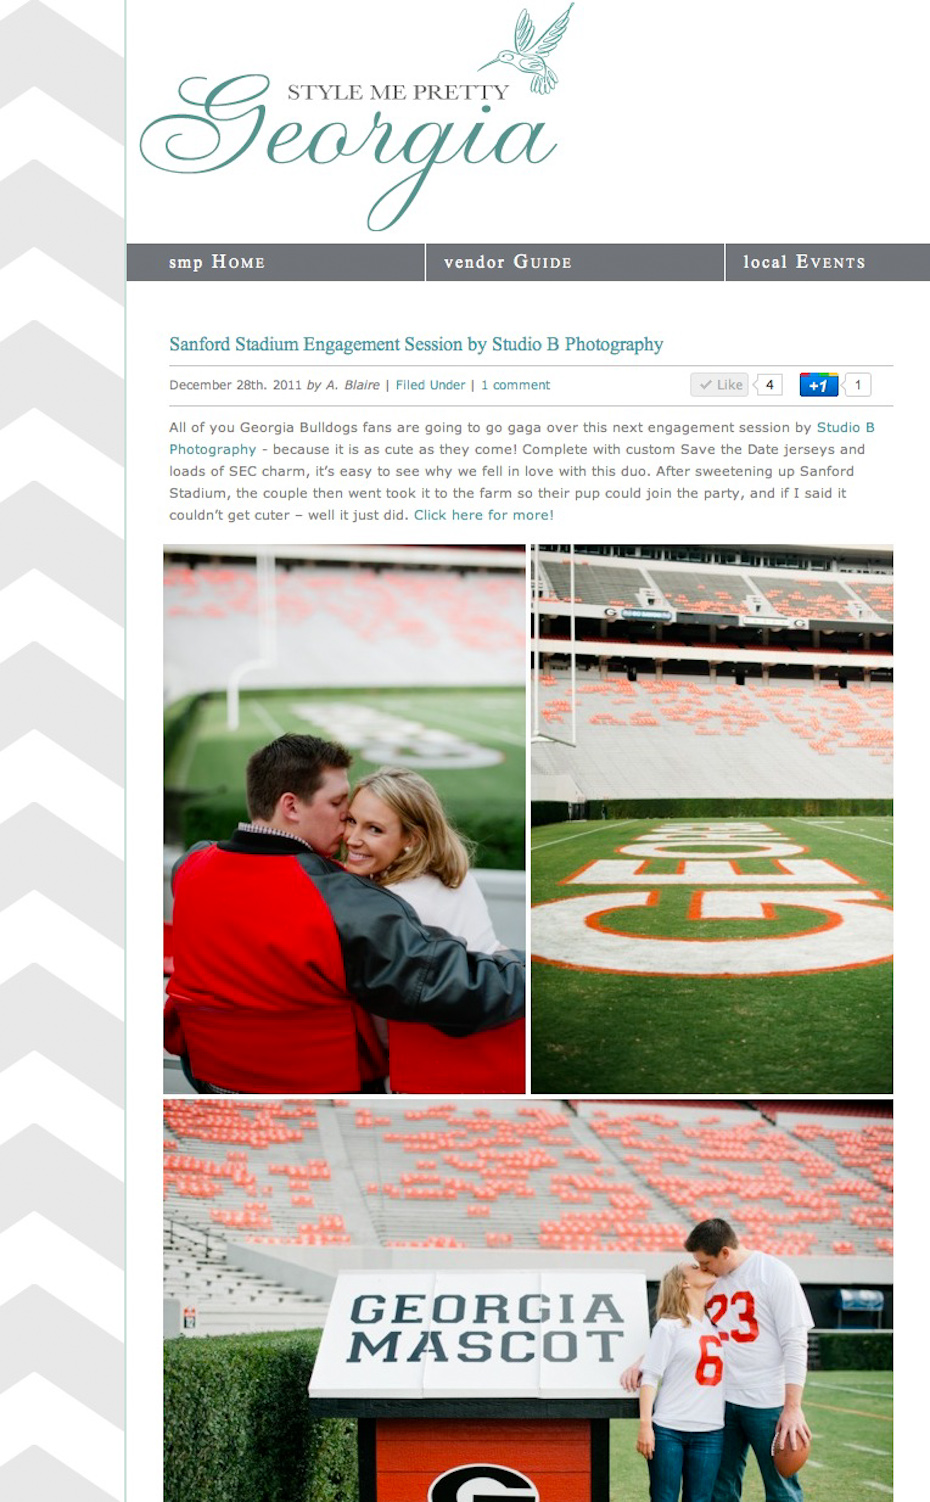 Atlanta Wedding Photographer on Style Me Pretty